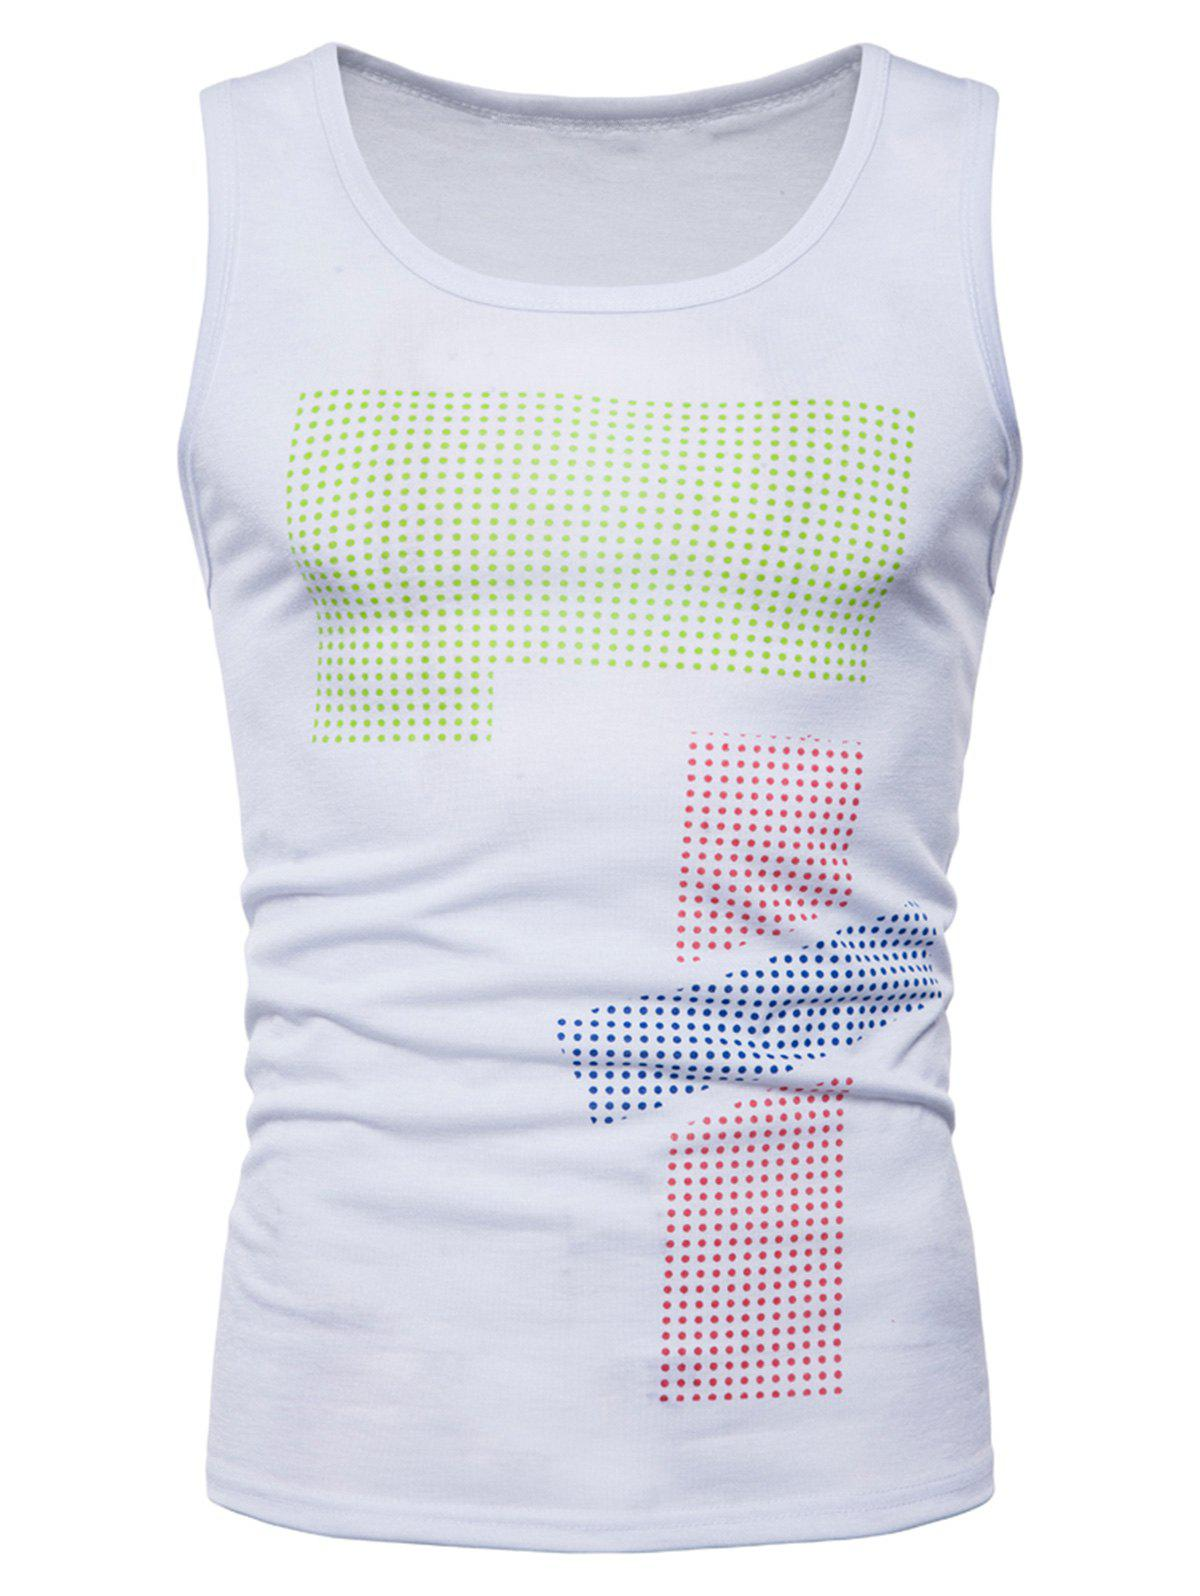 Store Polka Dot Relaxed Fit Tank Top